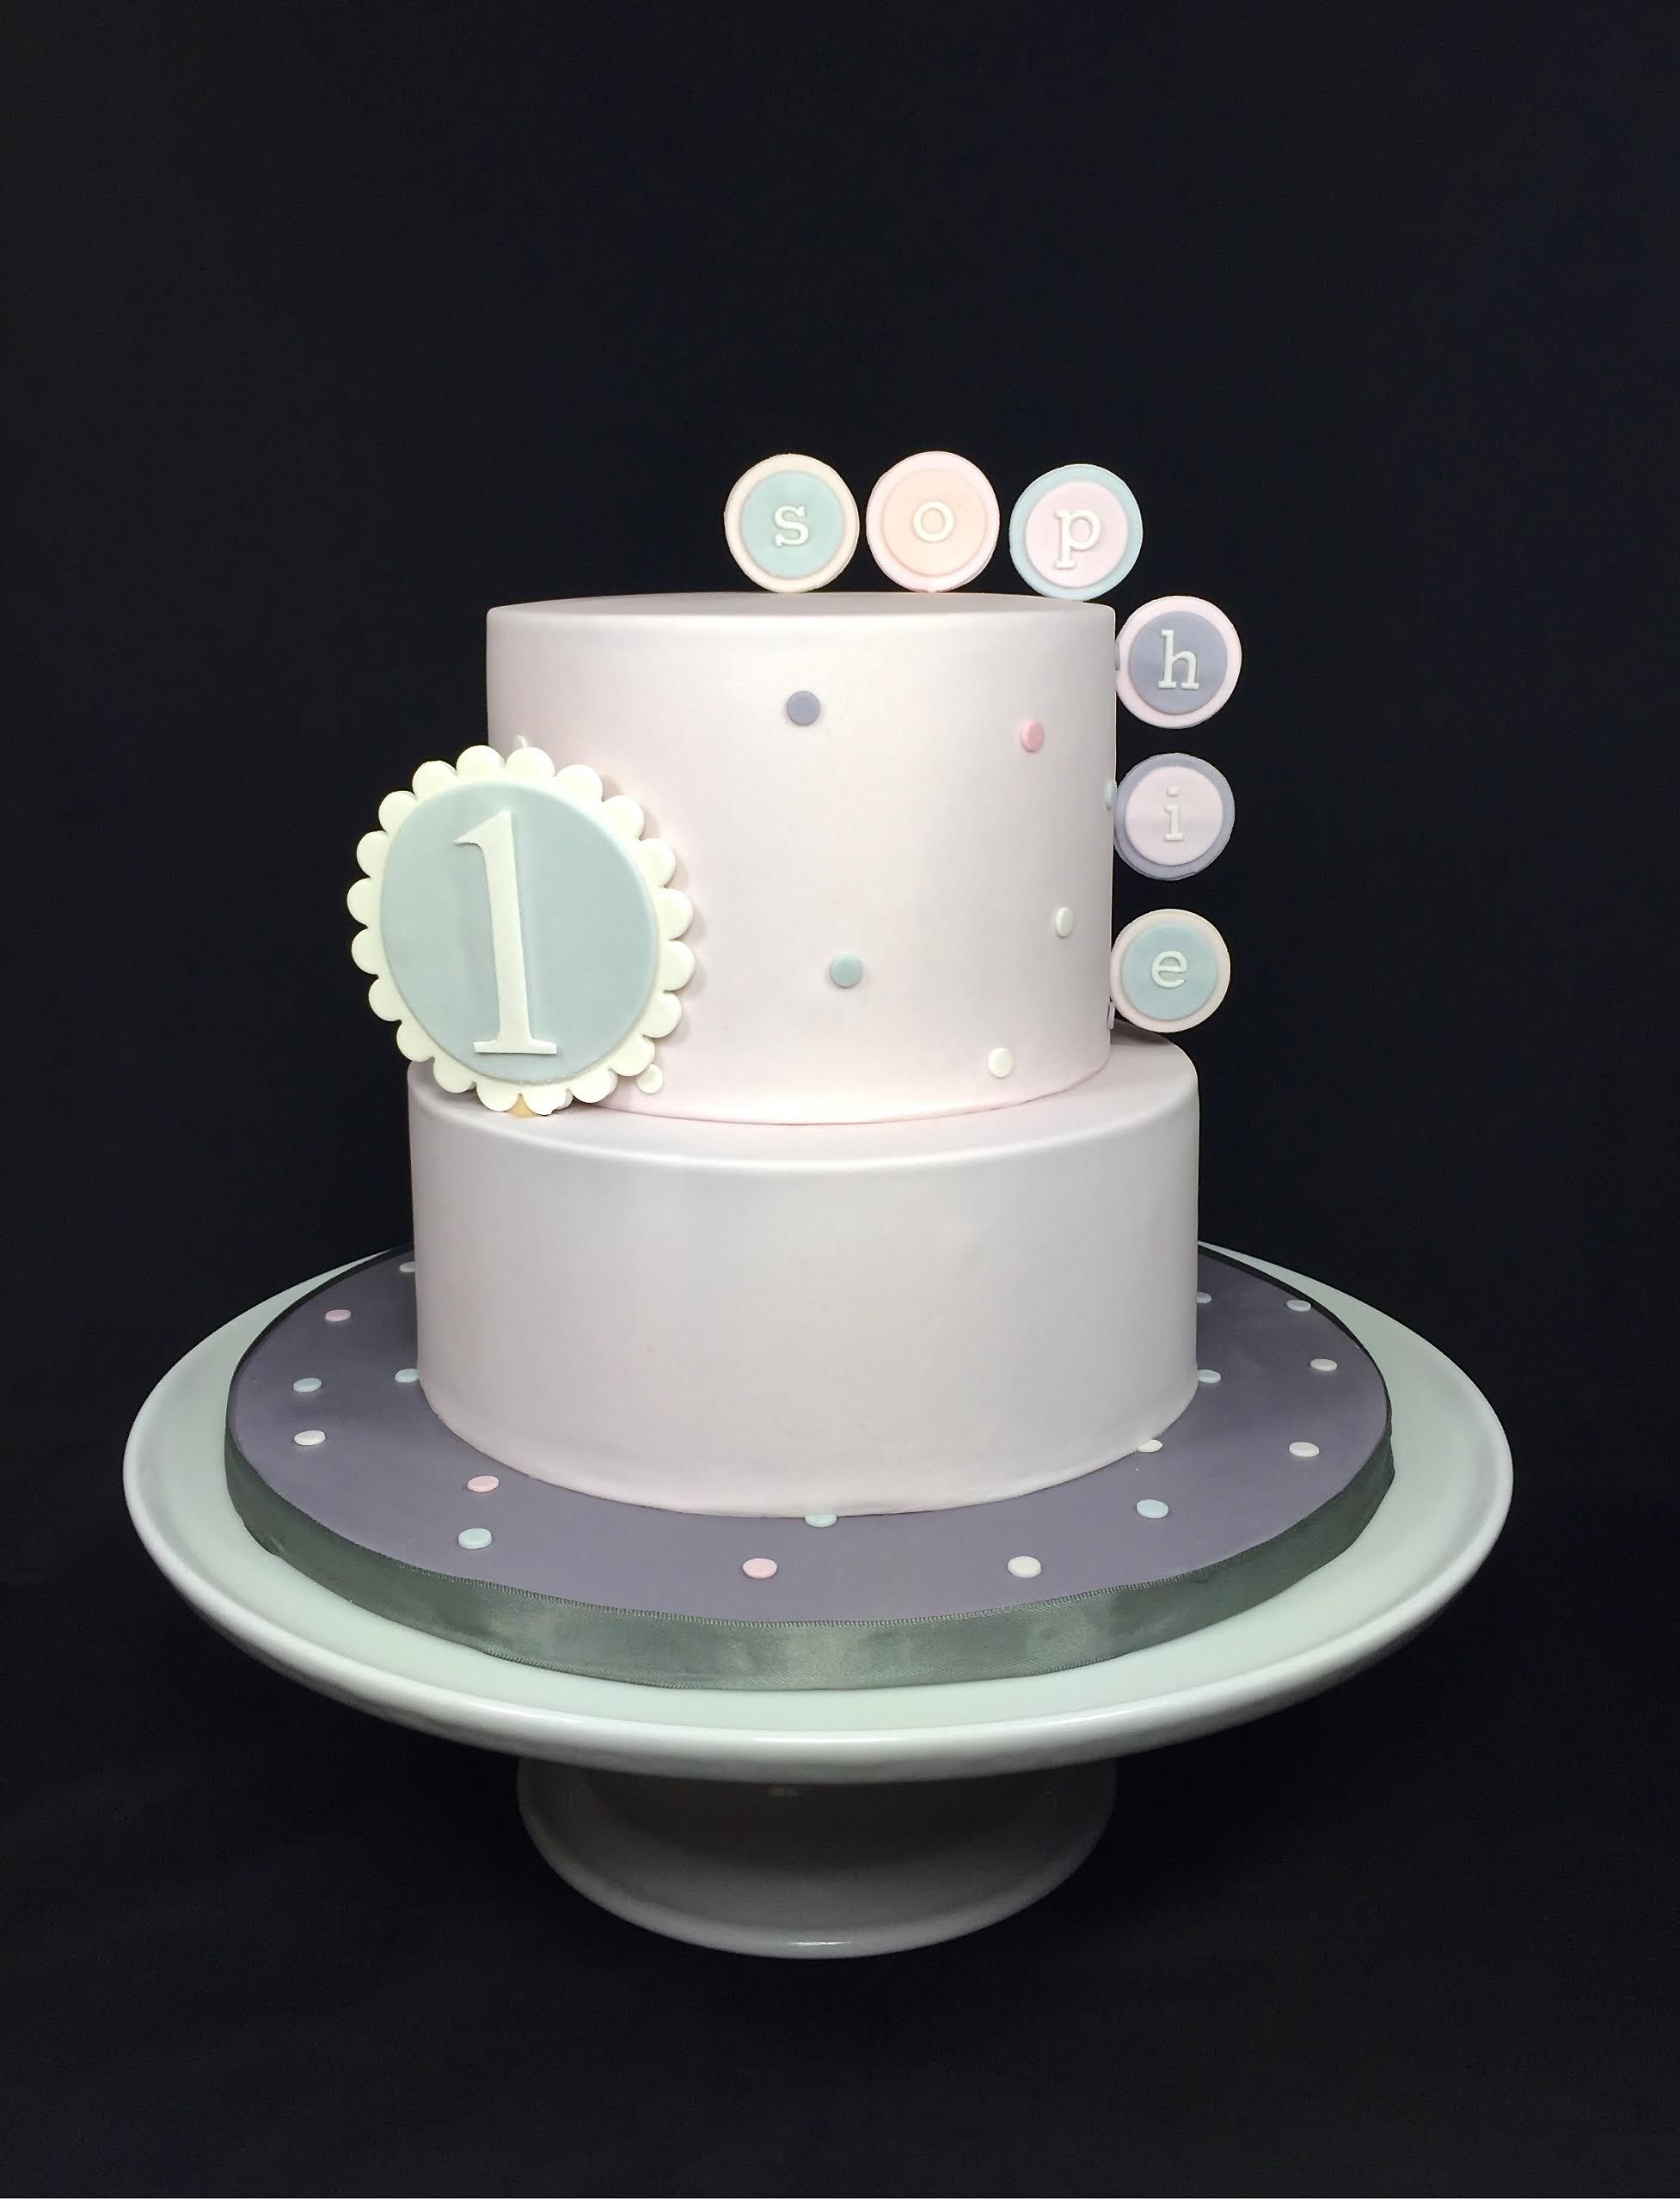 A dainty pastel birthday cake designed by Layer After Layer cake